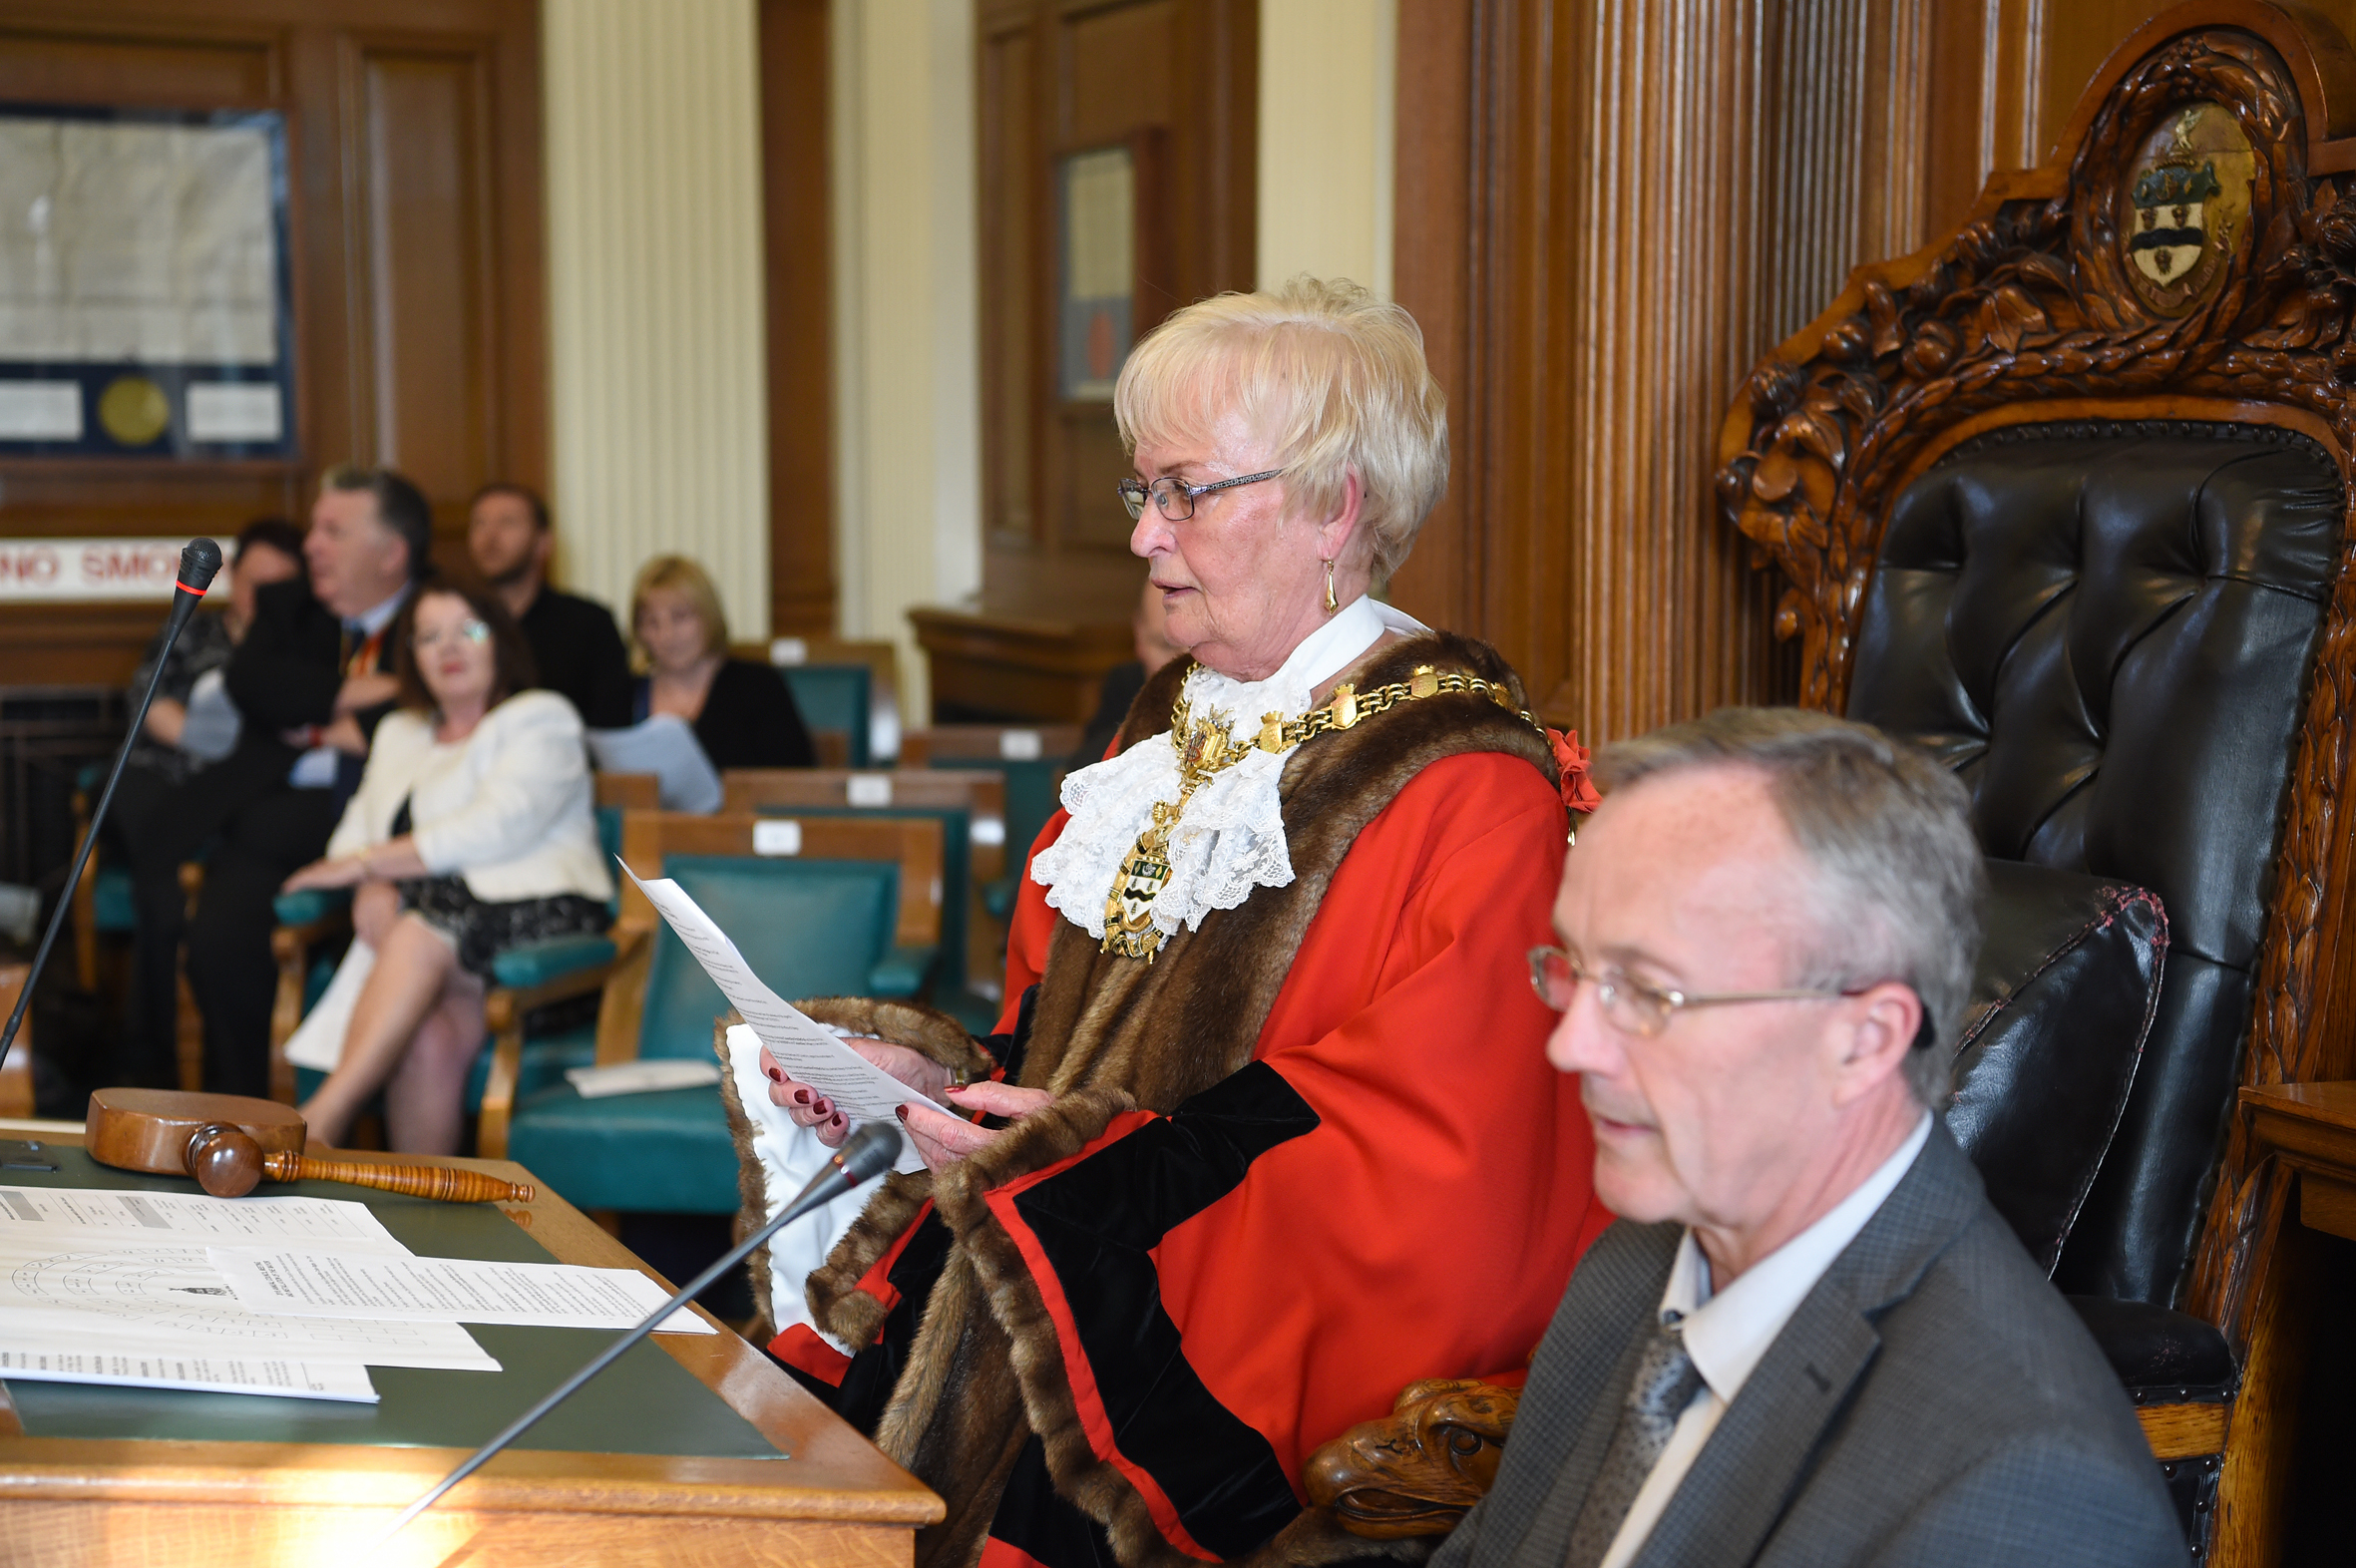 Cllr Pat McFall is installed as mayor for Blackburn with Darwen